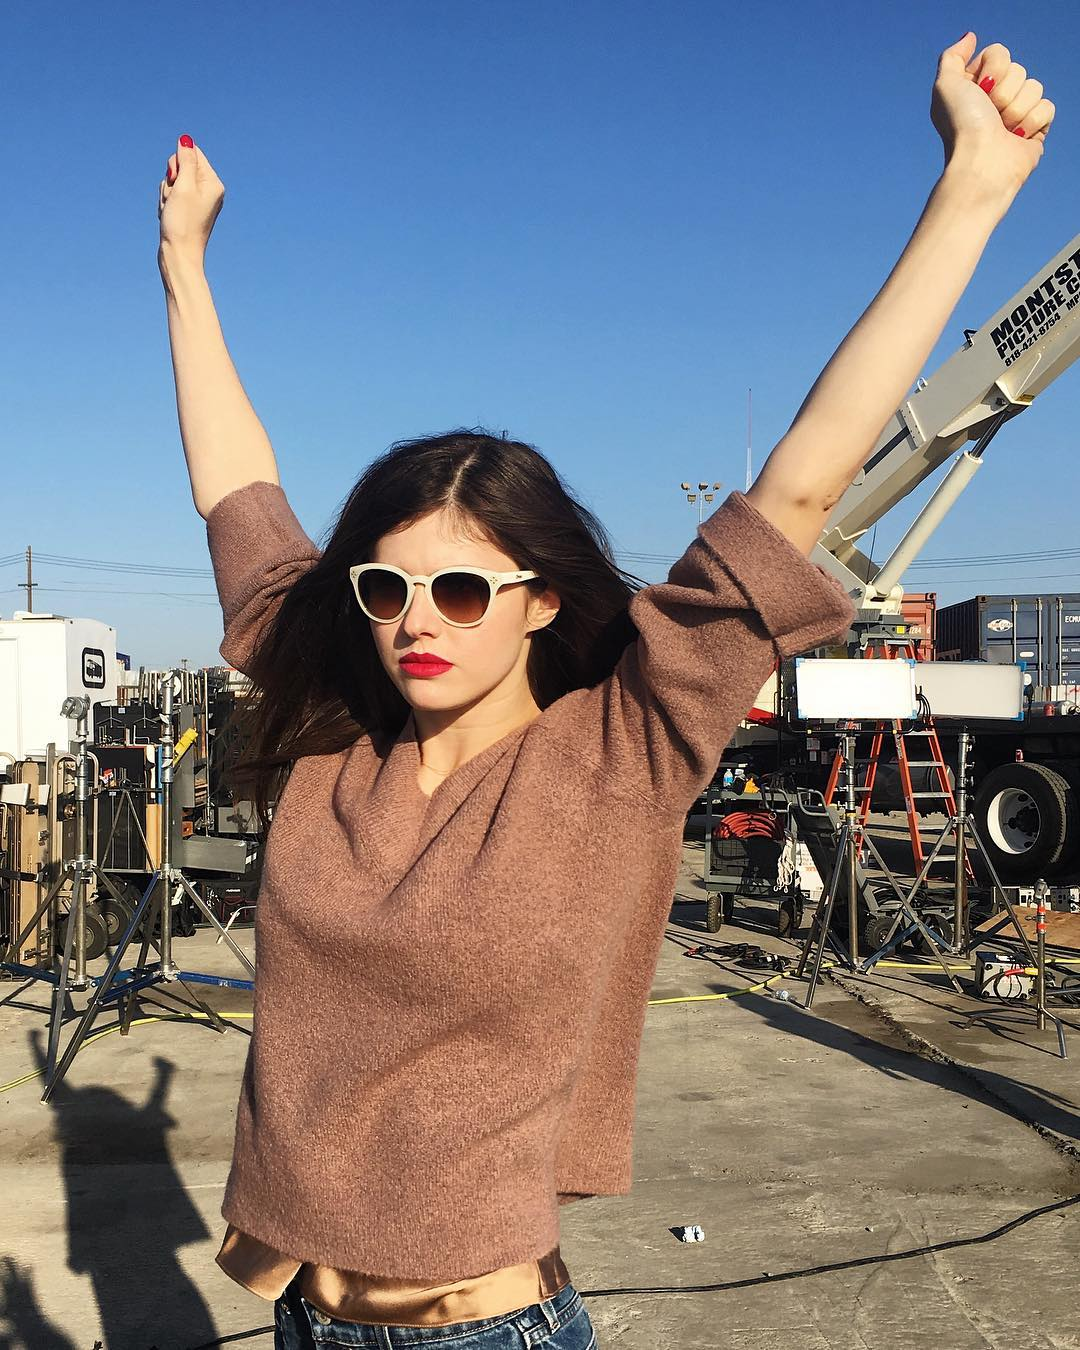 Alexandra Daddario Photos | Alexandra Daddario Pics - HD Actress Photo